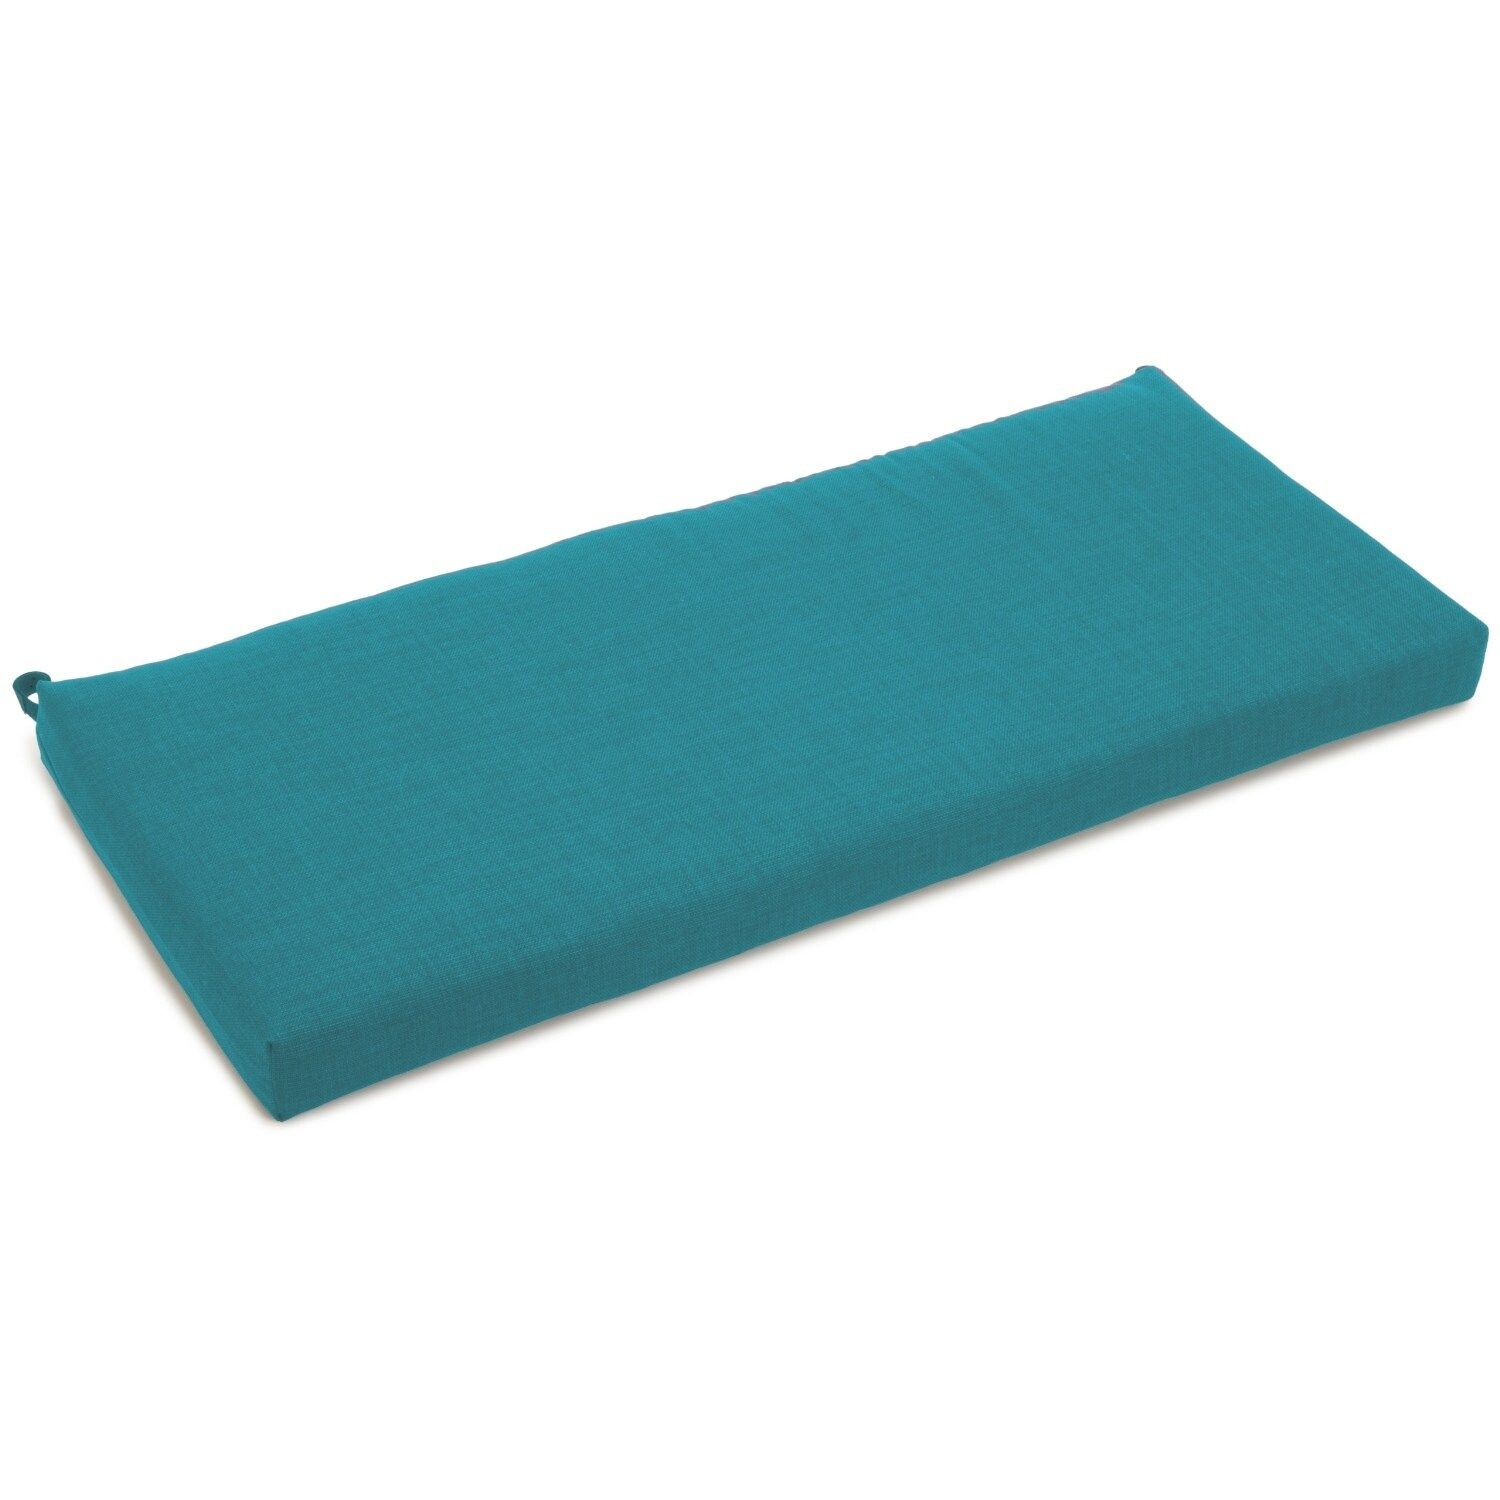 Blazing Needles 48 Inch All Weather Bench Cushion In 2021 Bench Cushions Patio Bench Cushions Outdoor Bench 48 inch bench cushion indoor